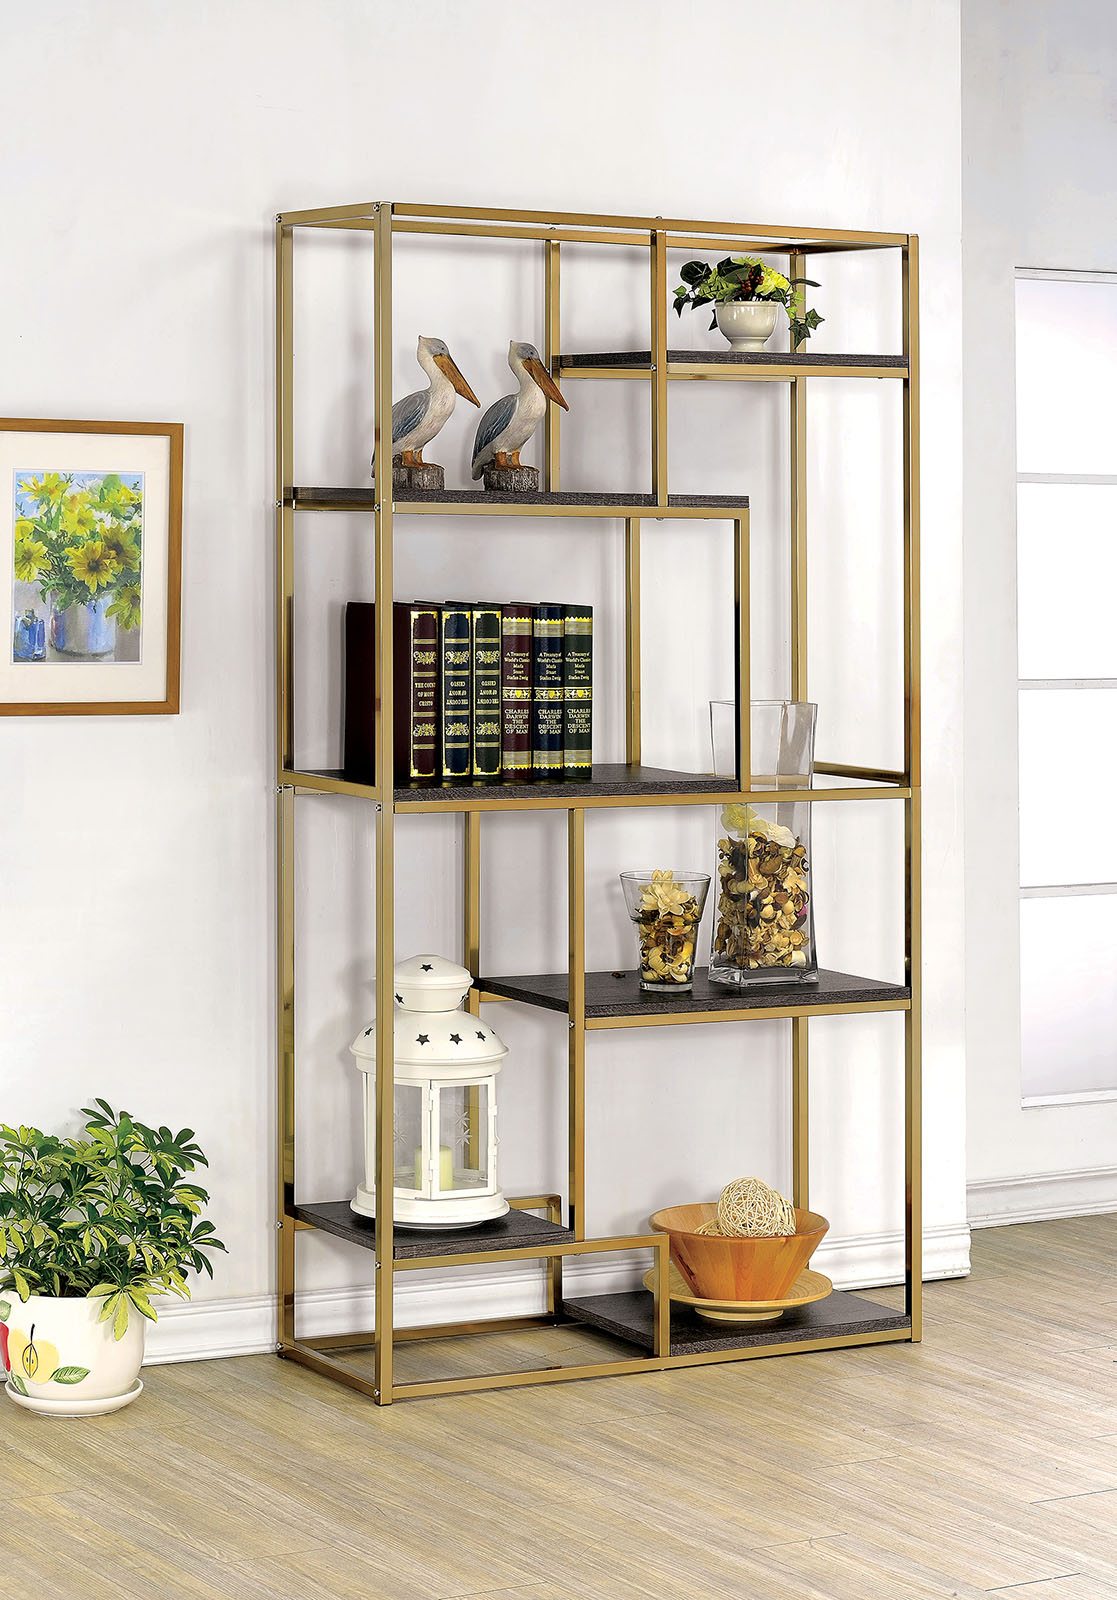 Furniture of america cm ac6264cpn bookshelf 6 tier shelves for Furniture of america nara contemporary 6 shelf tiered open bookcase